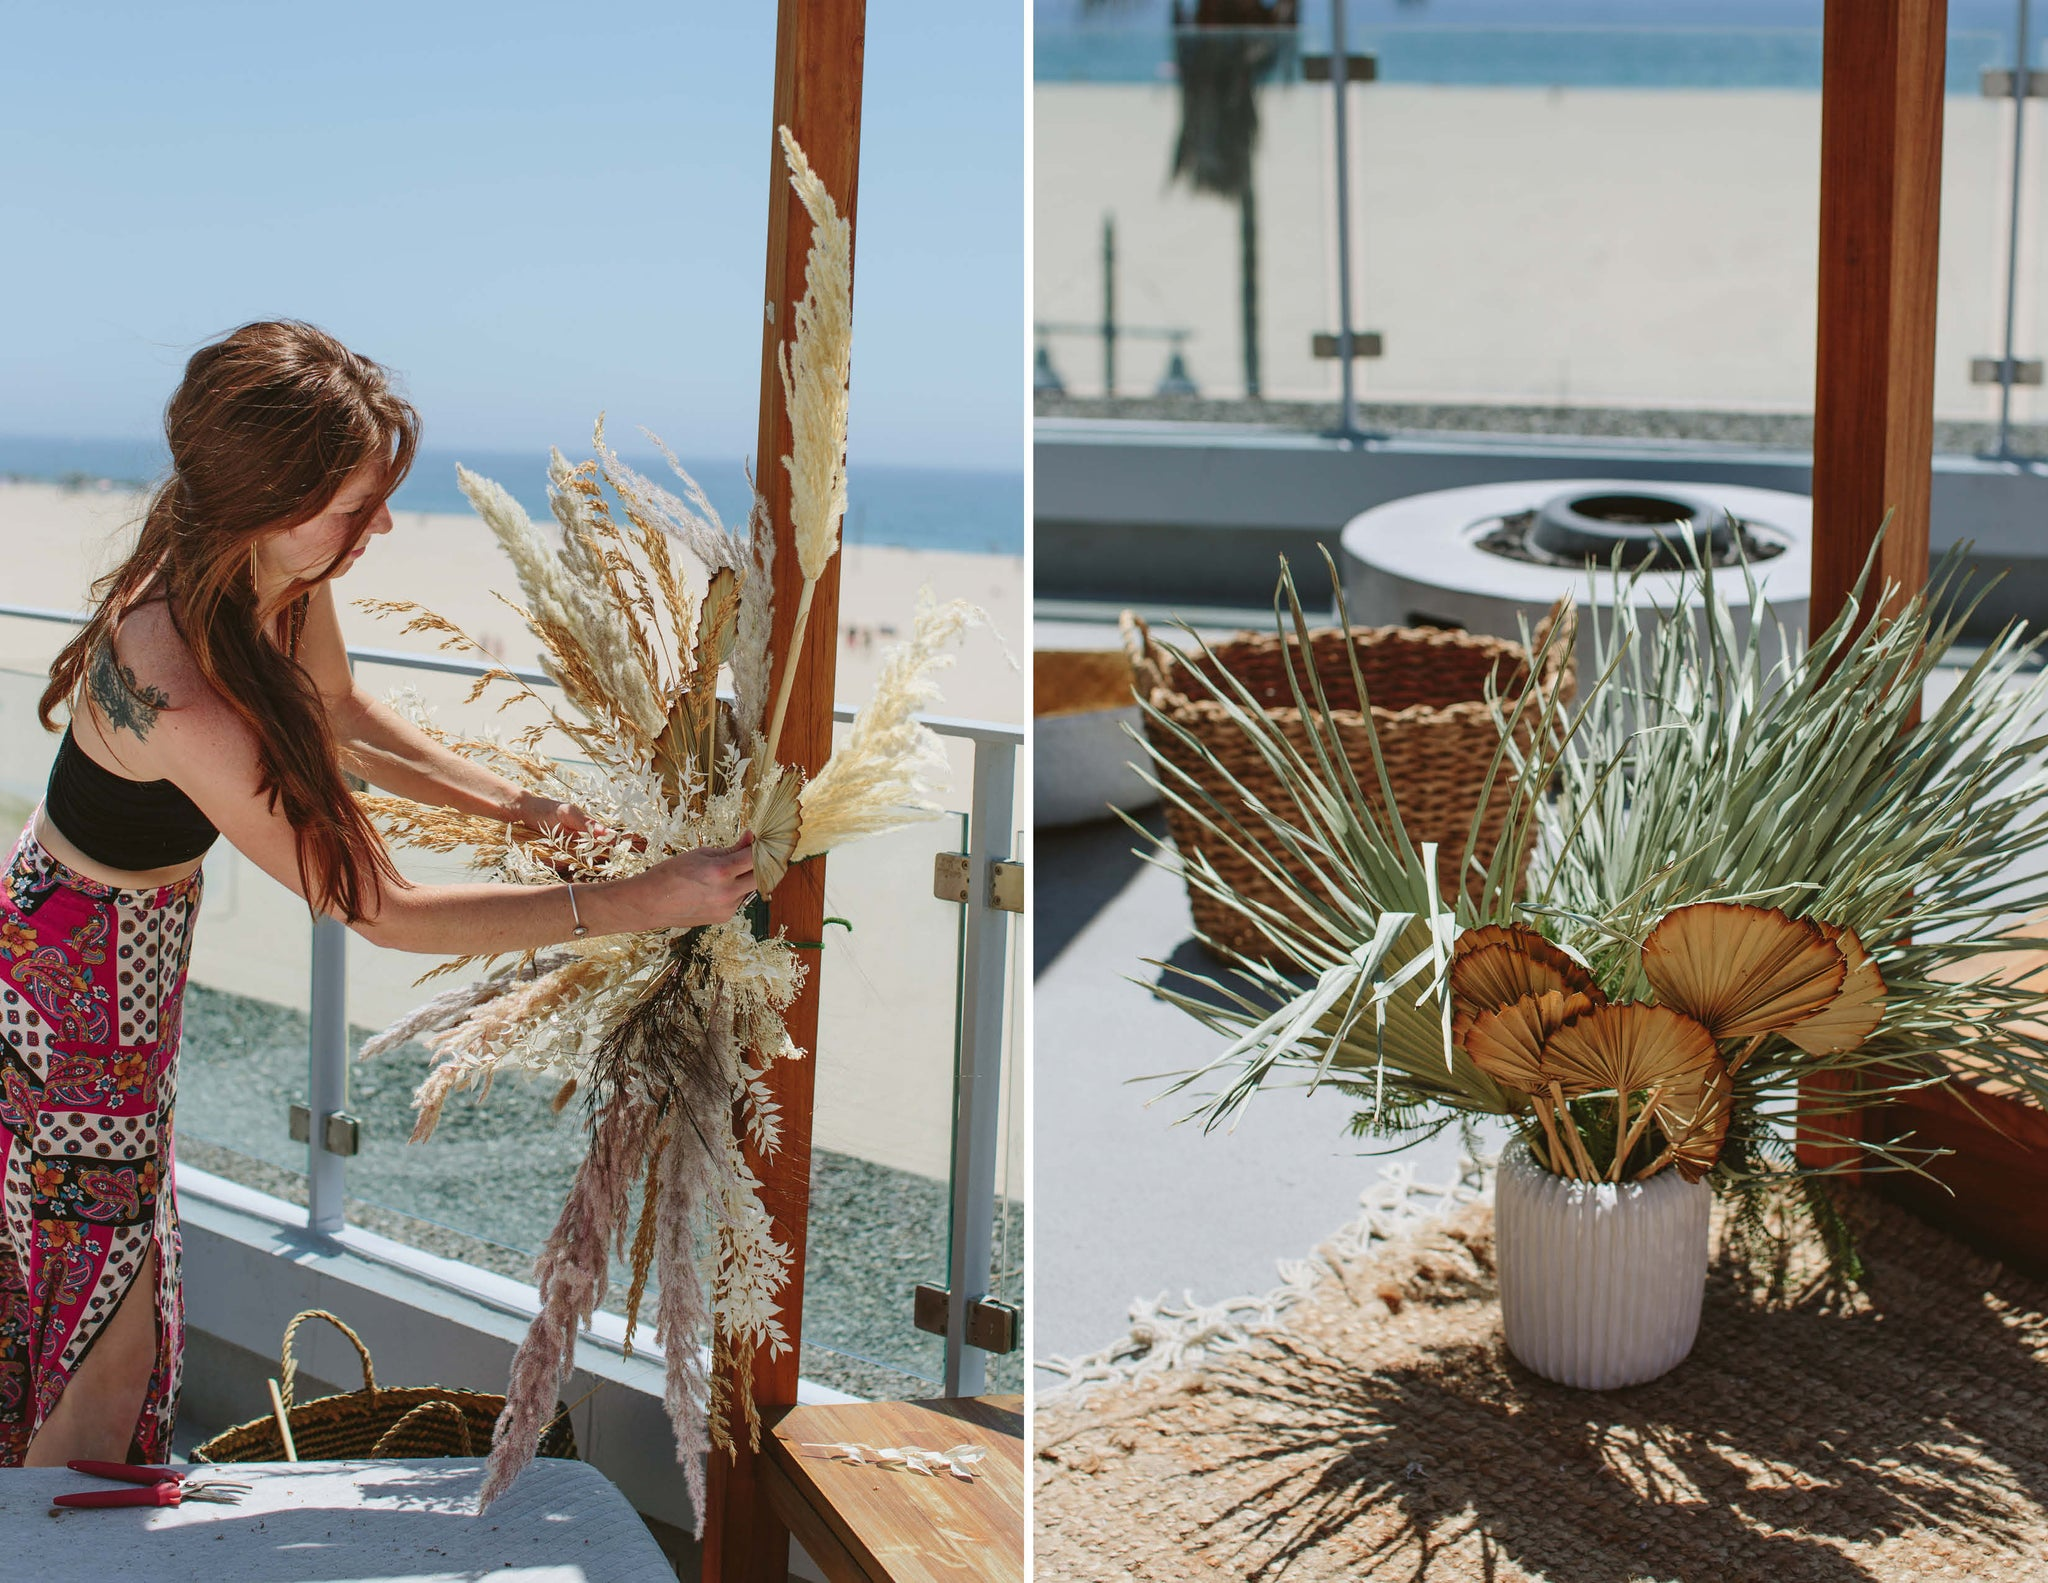 12th Tribe Rooftop Summer Boho Beach Dreams Event | Photographer @theeternalchild | The Eternal Child Sashi Venice Wildflora Los Angeles florist Ventura Blvd Studio City California Original Farmers Market The Grove flower delivery bouquet floral event special color palette neutral beige sand sand brown pale light pastel pink green gold maroon dried muted white ceramic planter pottery container woven basket pampas grass black palm fan variegated rug fire place redhead shoulder tattoo installation